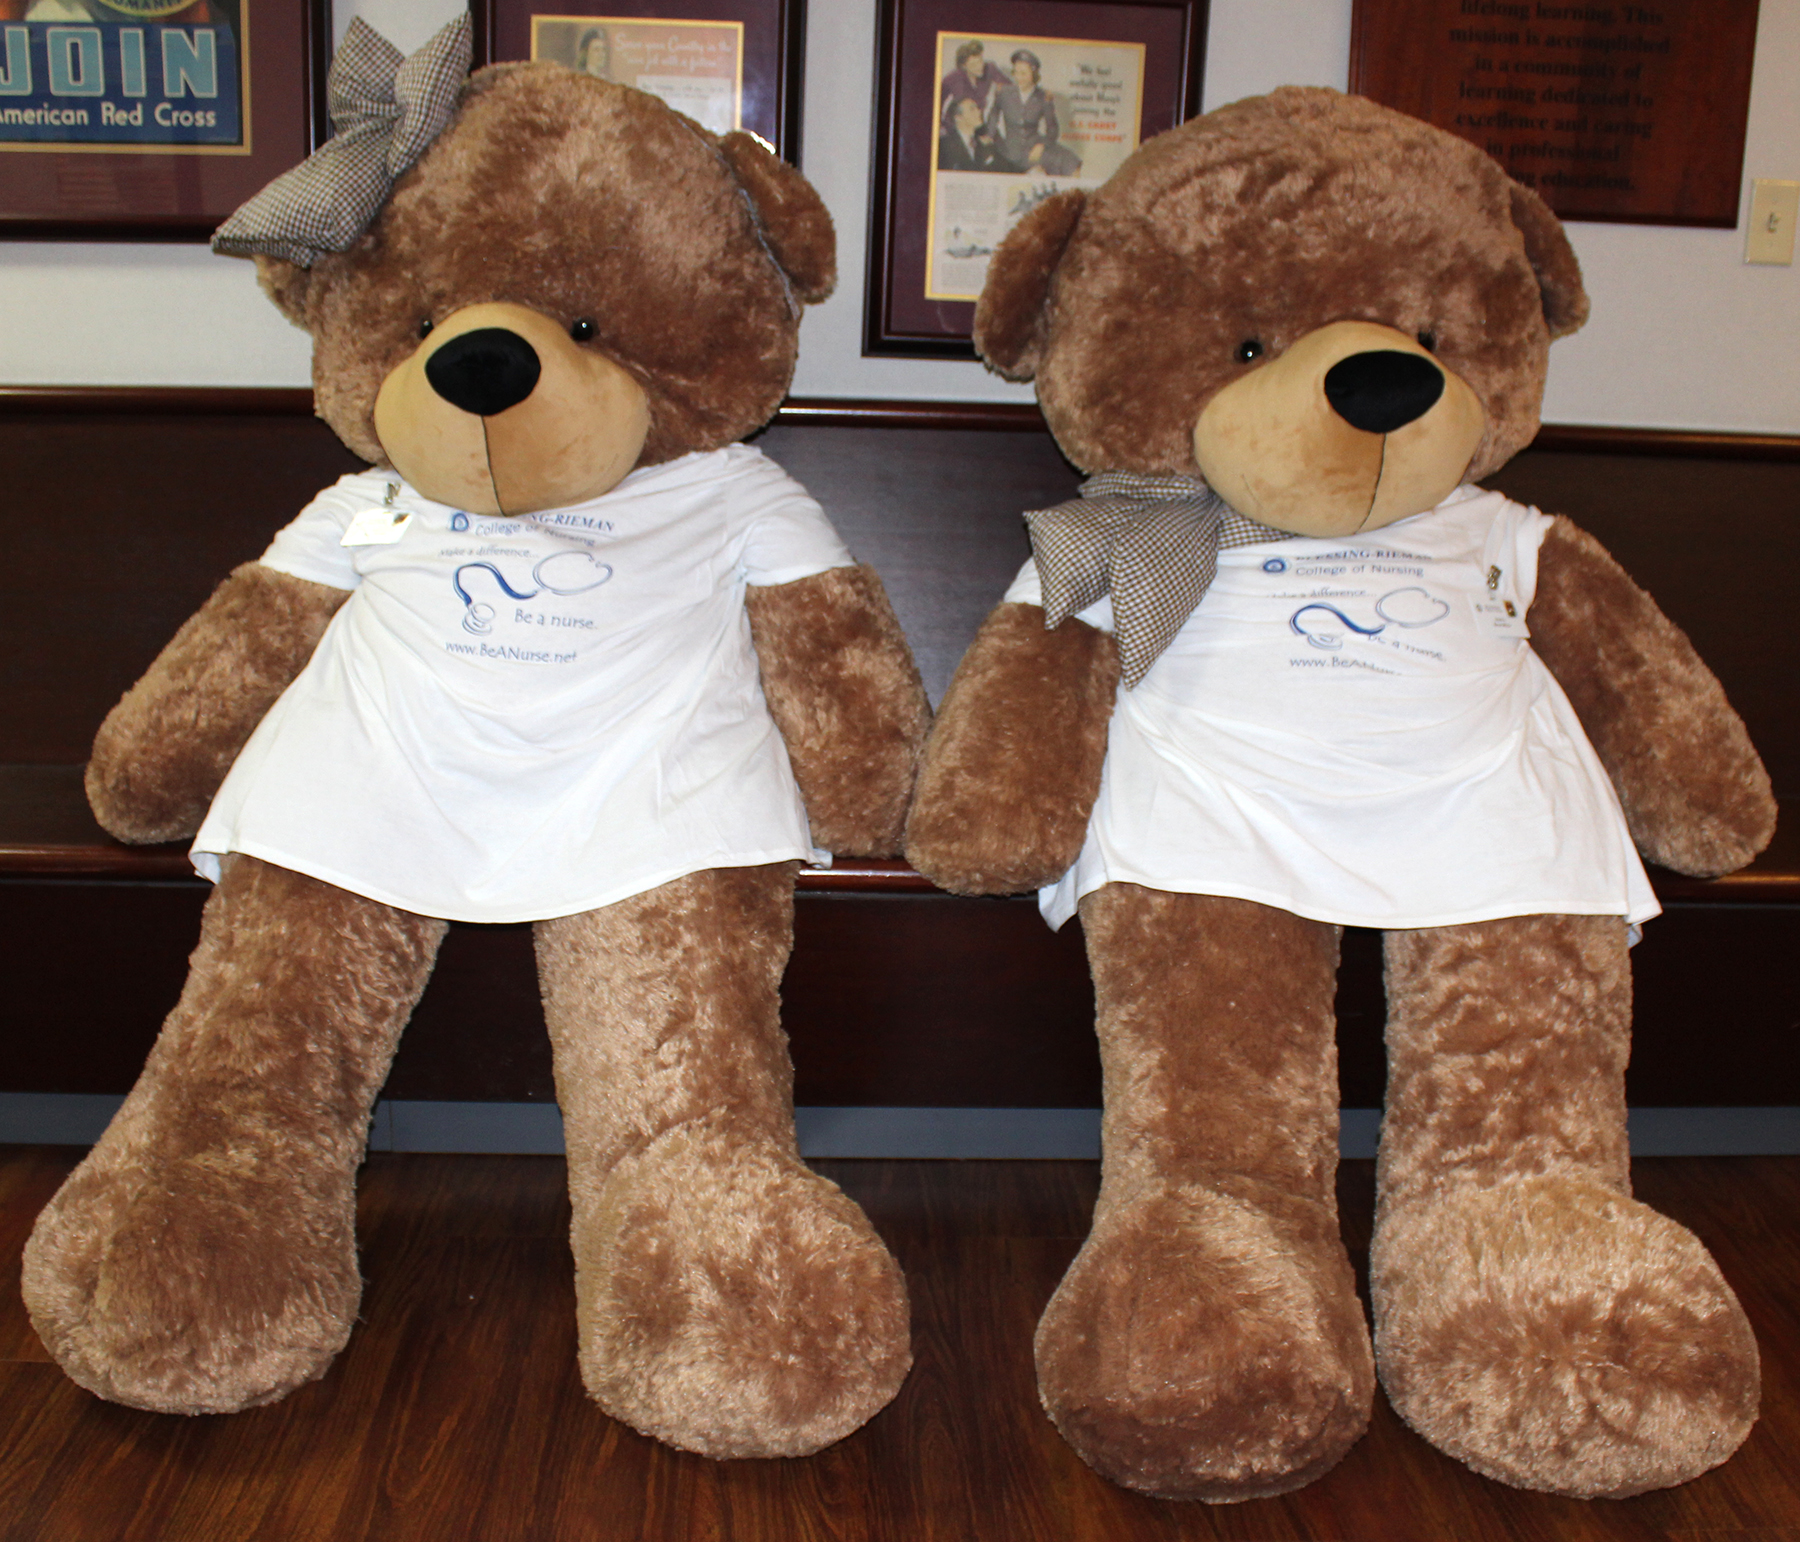 Flo BrownBear on left and Dorsey BrownBear on right